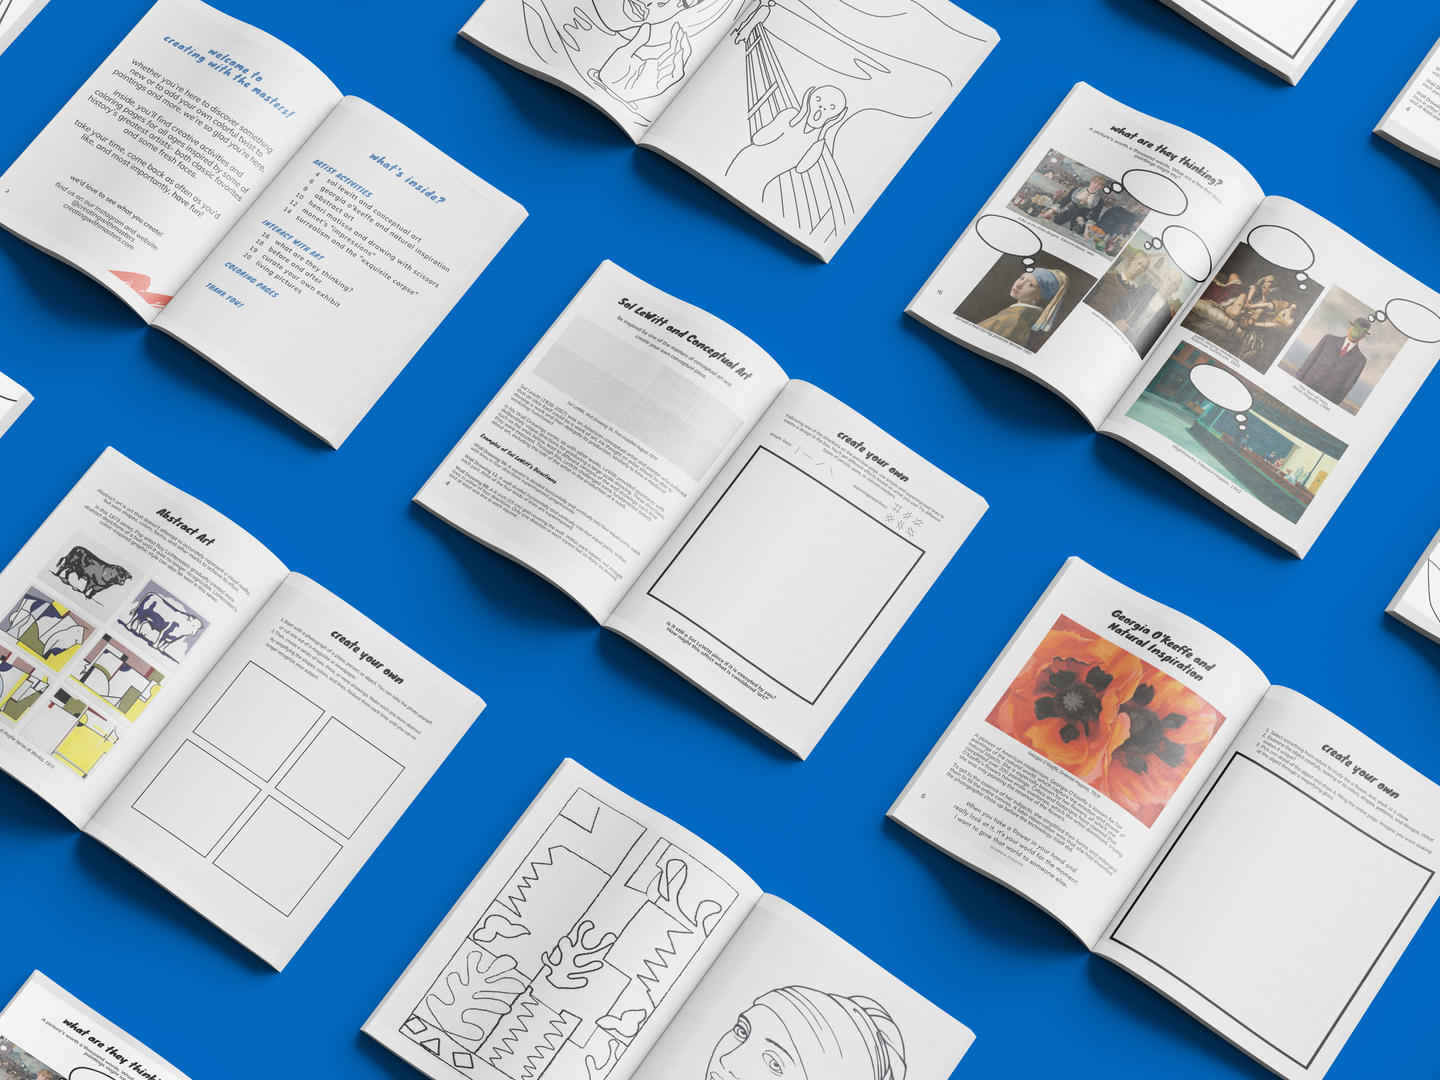 A selection of pages from Creating with the Masters.